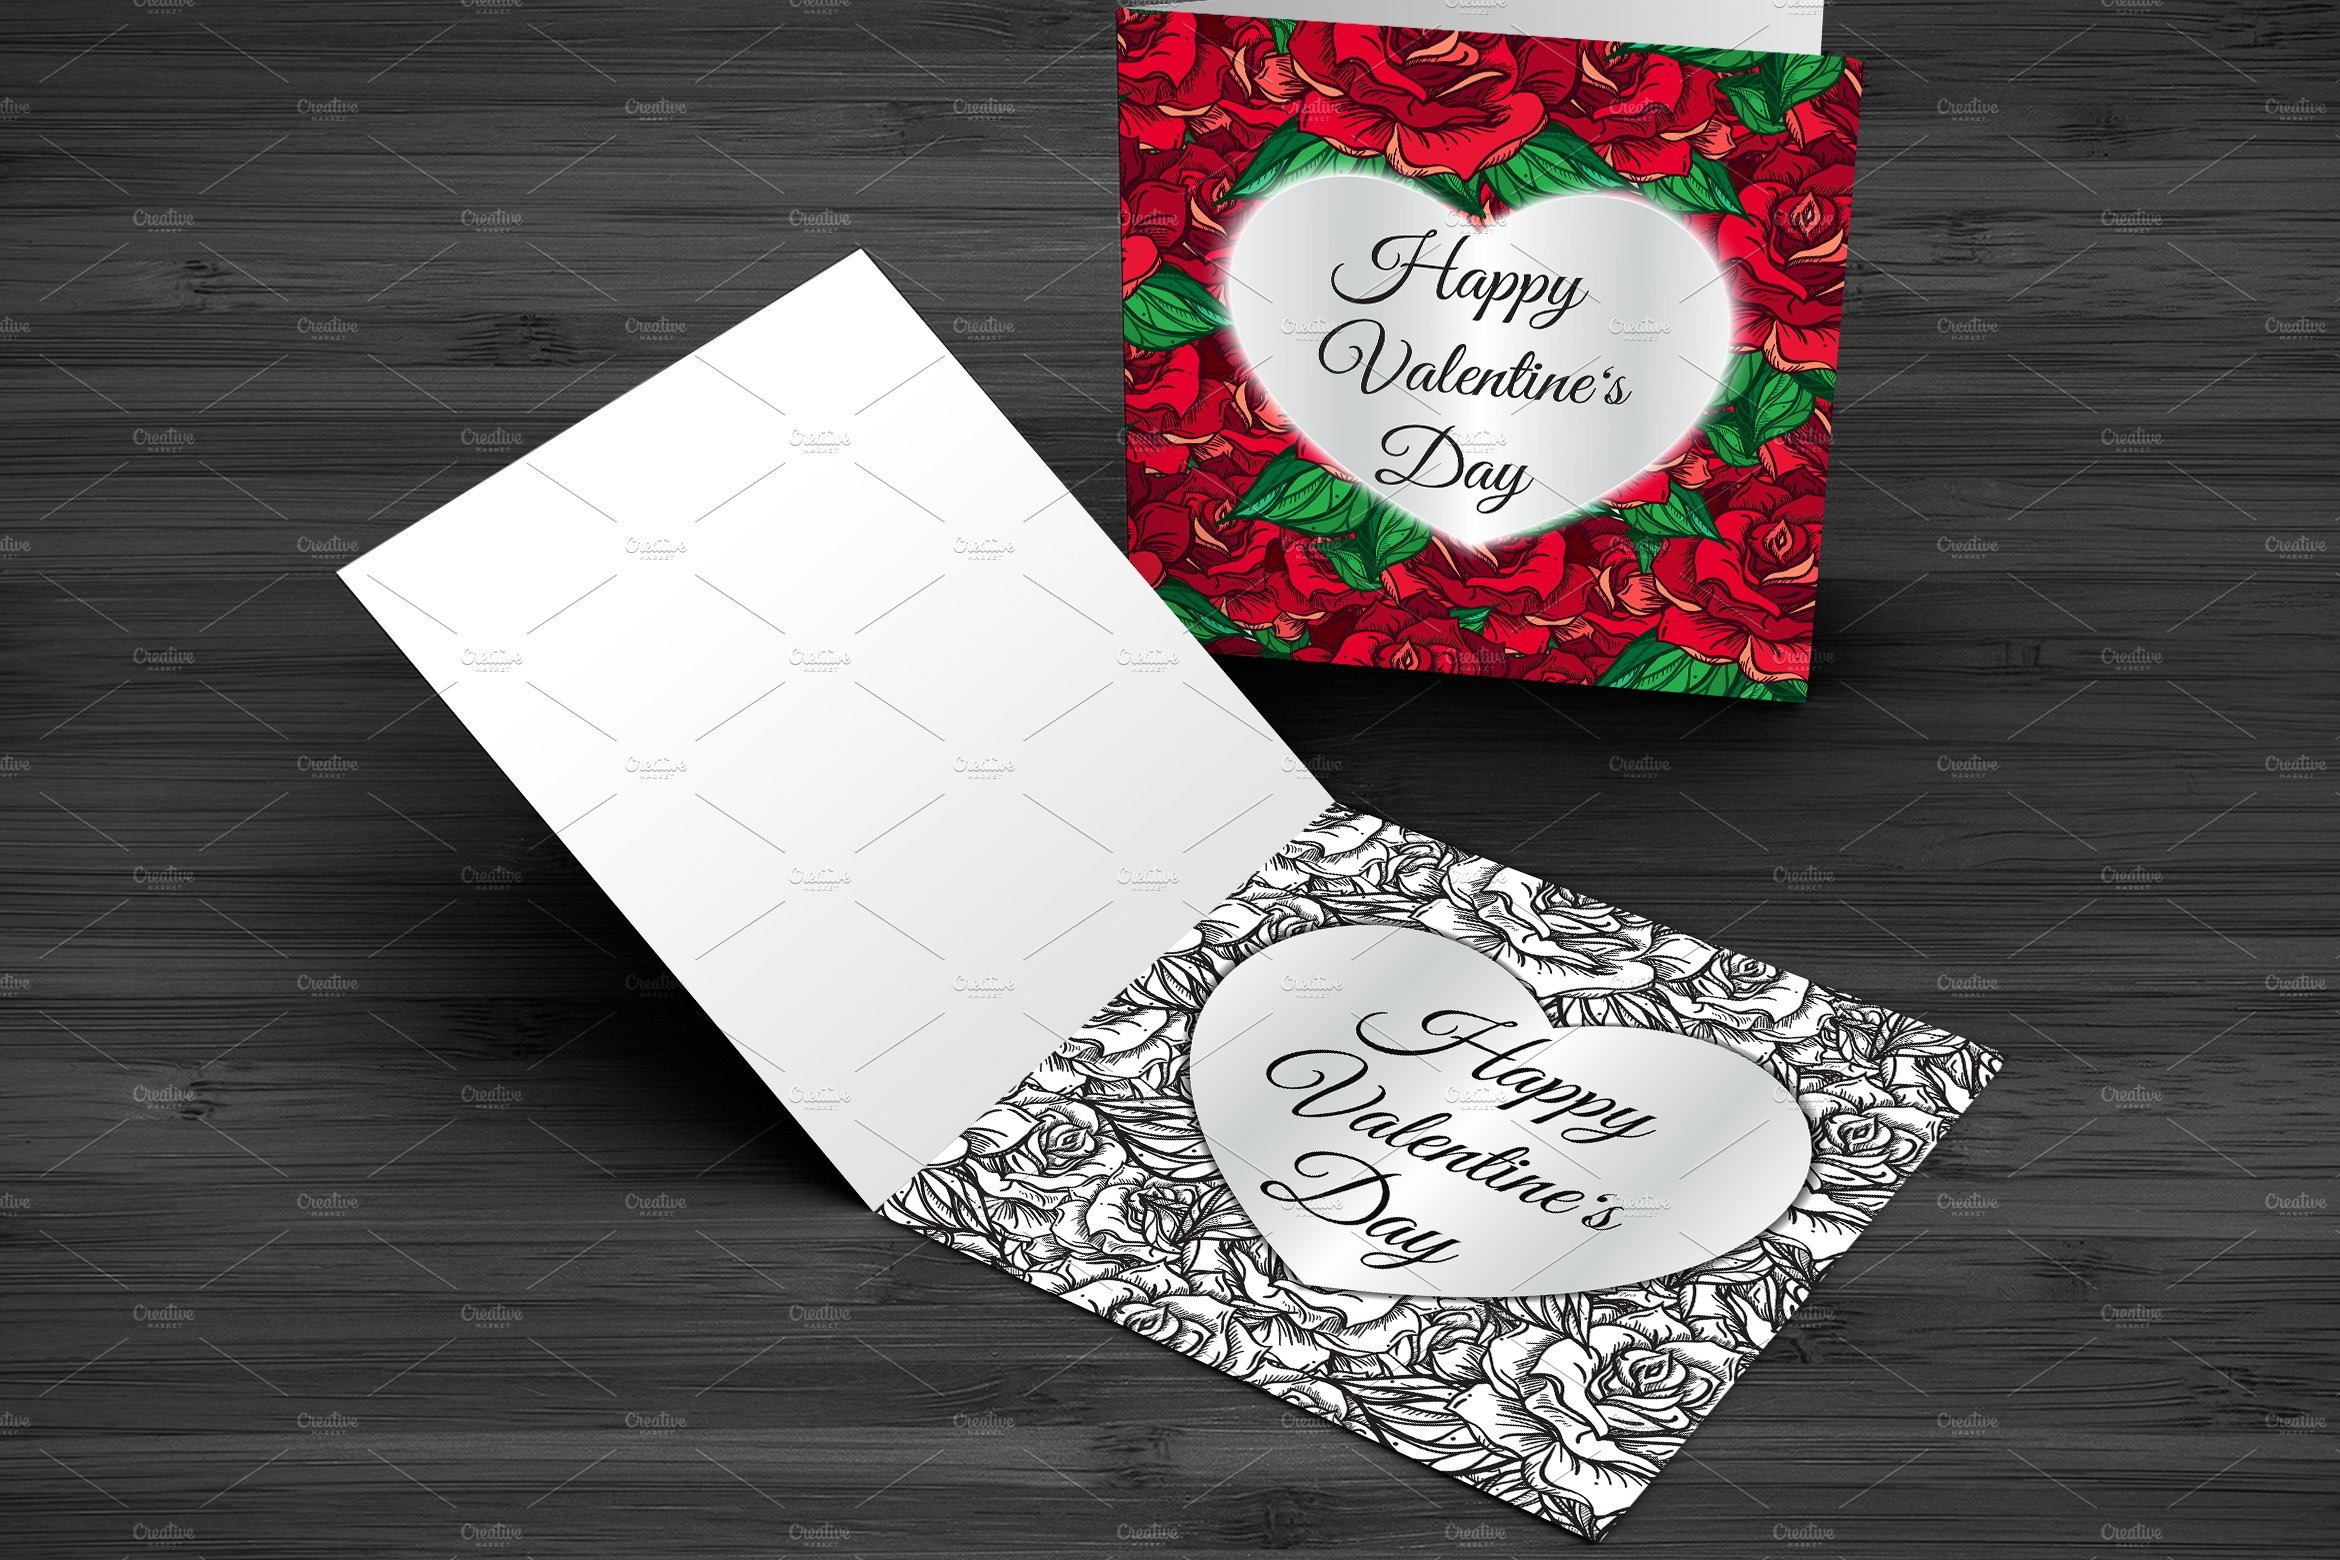 Valentine's Day Cards With Roses Corporate Identity Template